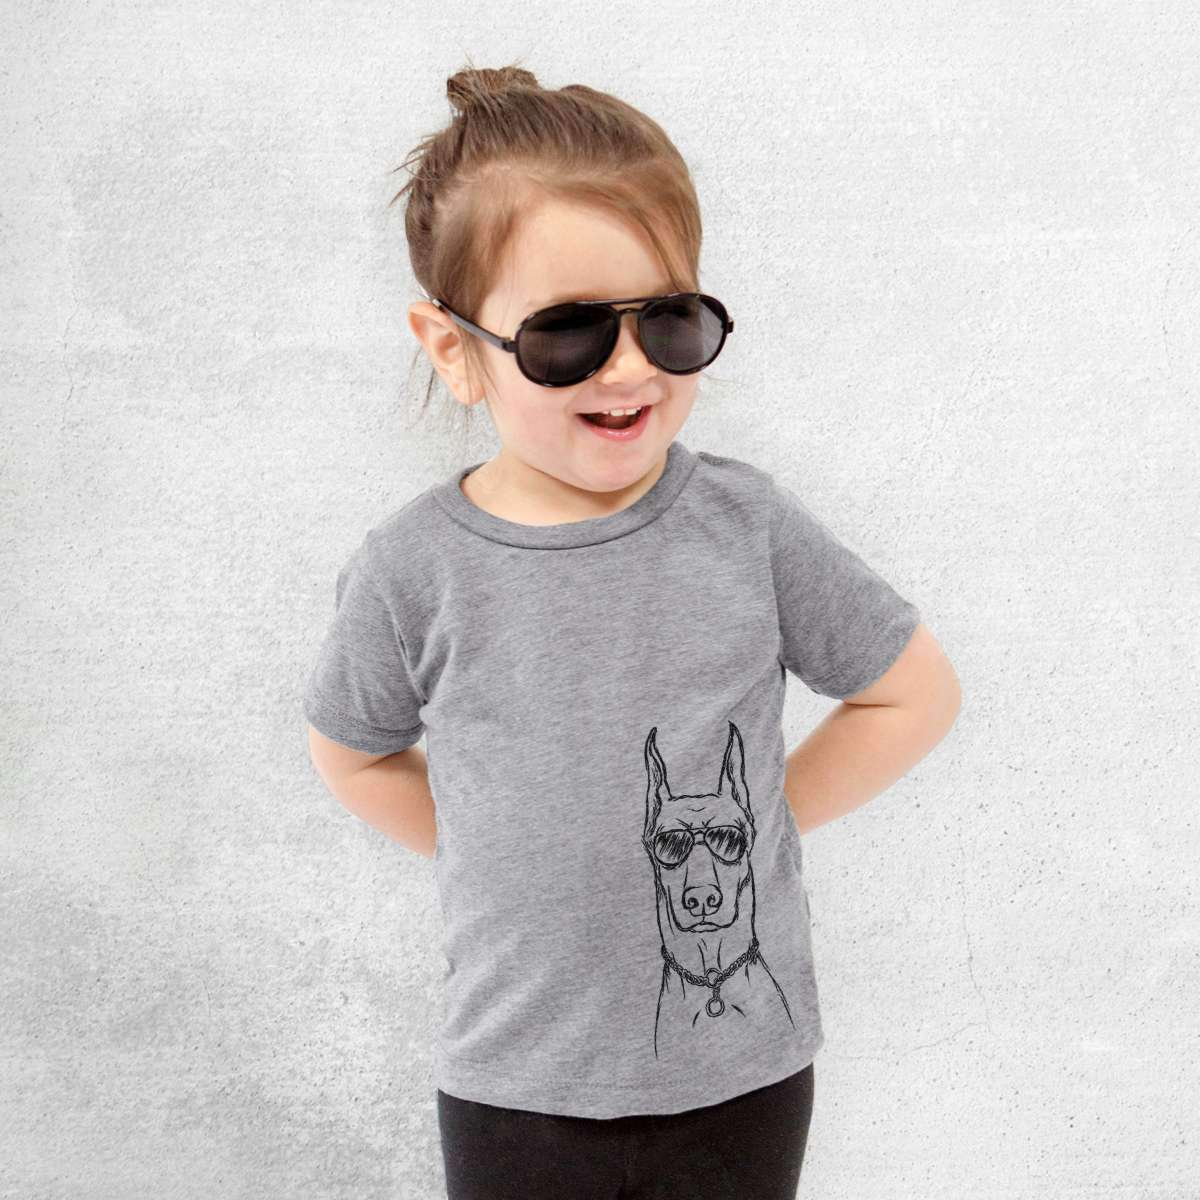 Ace the Doberman Pinscher - Kids/Youth/Toddler Shirt